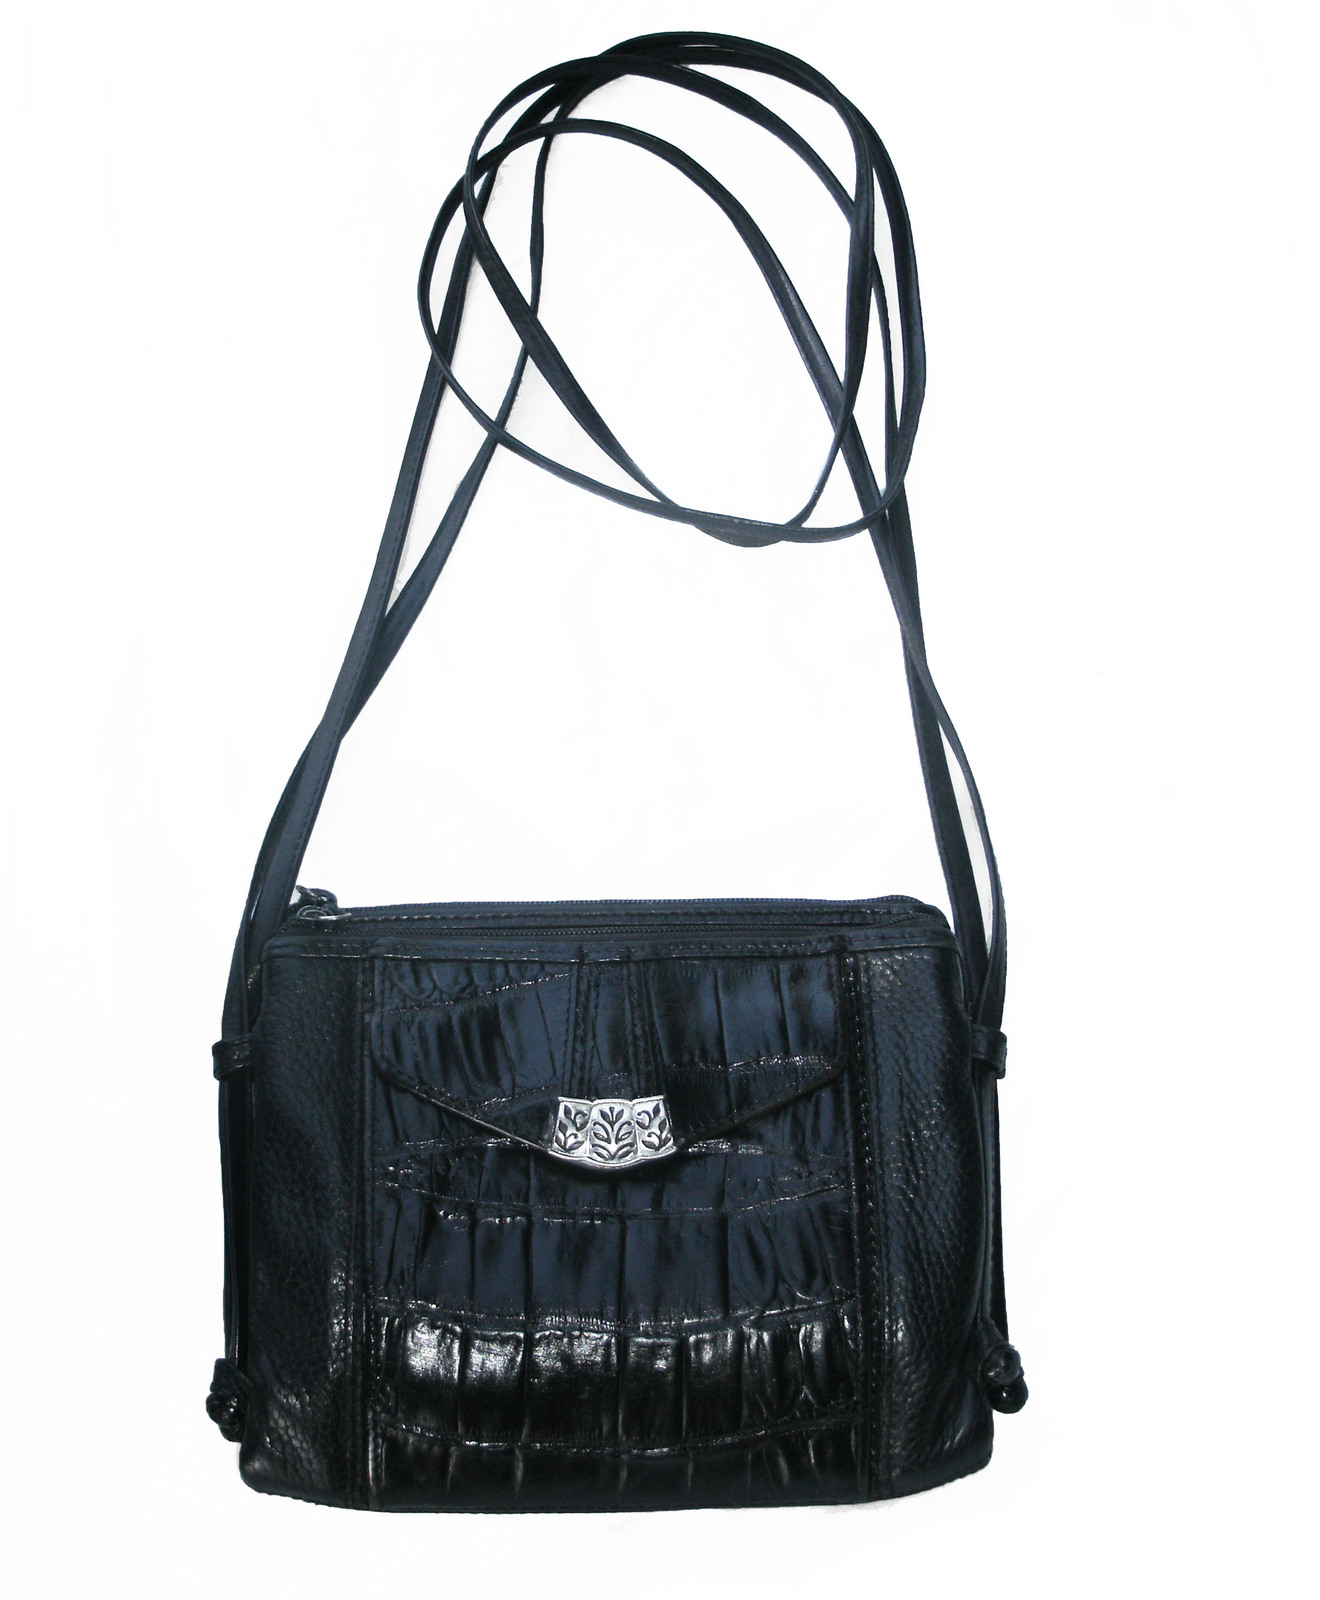 Brighton Croc and Pebbled Leather Cross Body Organizer Bag Black Silver Wallet